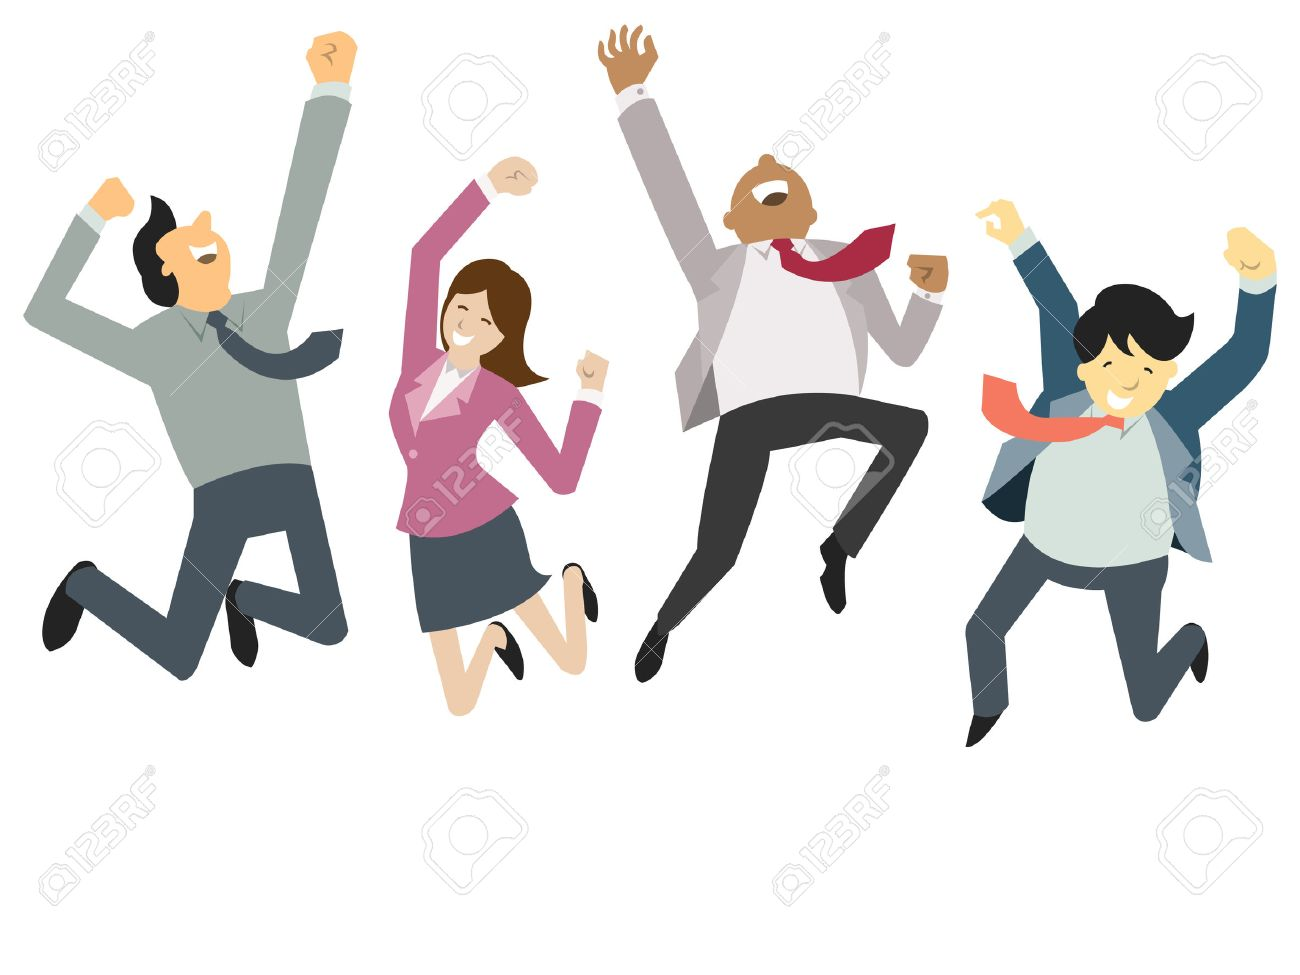 Happy and successful businesspeople, jumping in the air, business concept in teamwork and corporation. Stock Vector - 32359484